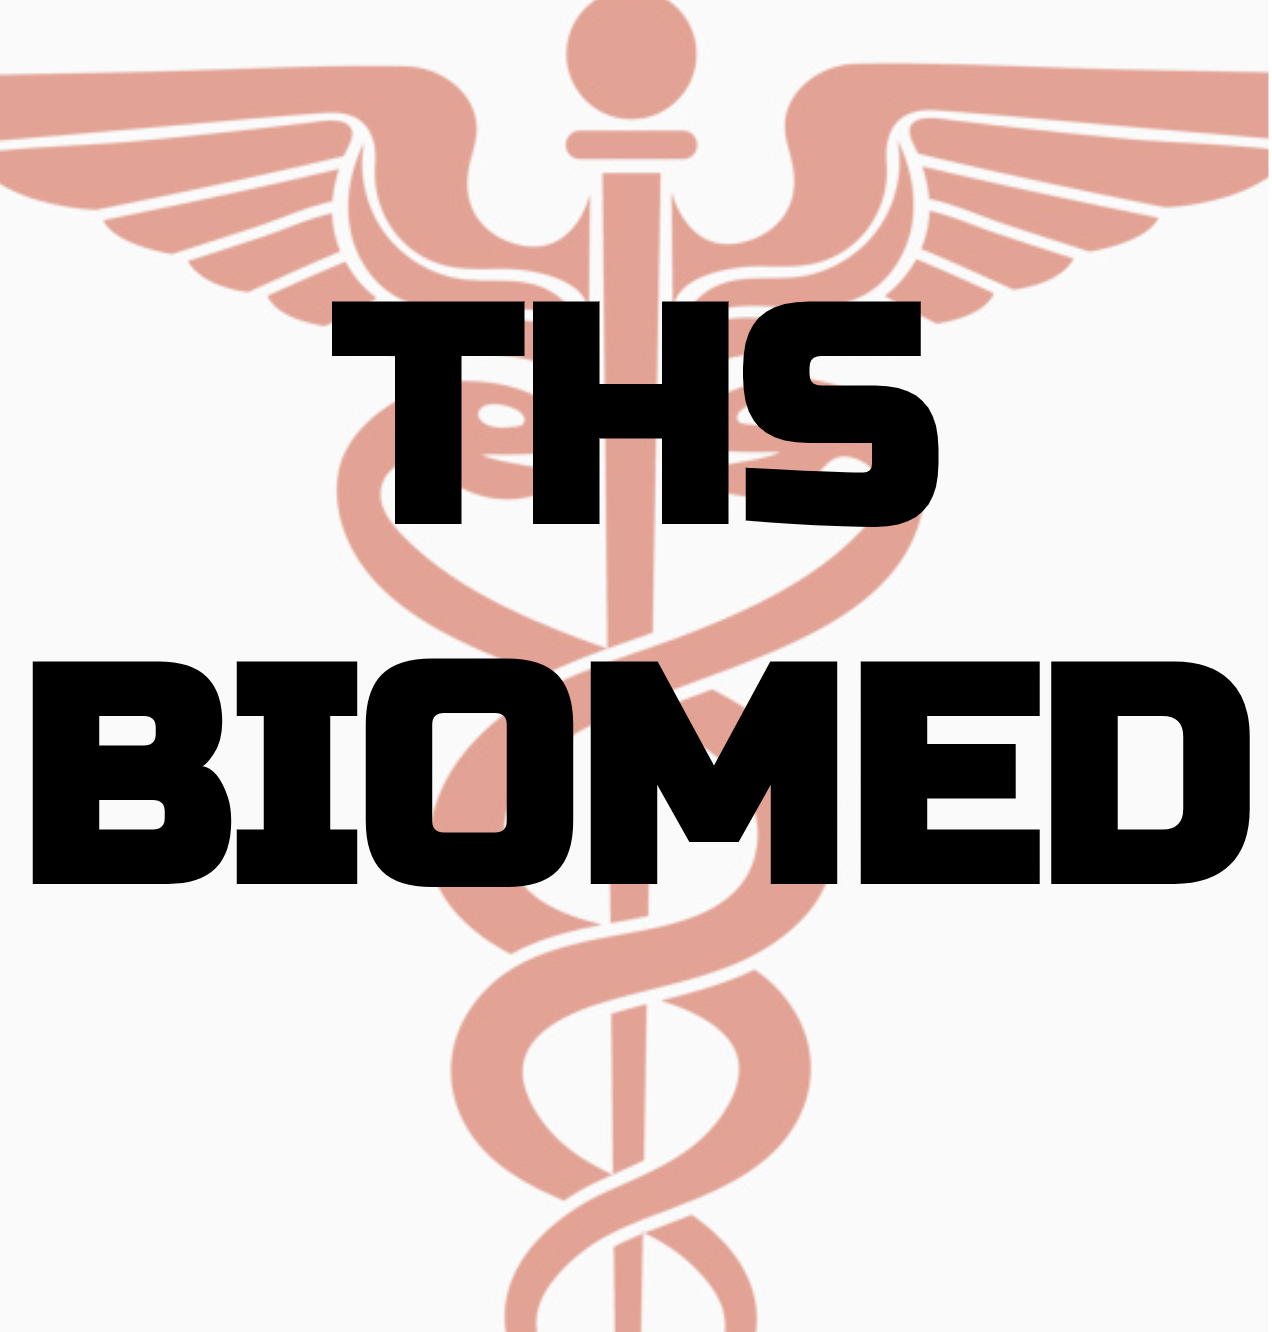 THS BioMed written in black over a health services watermark